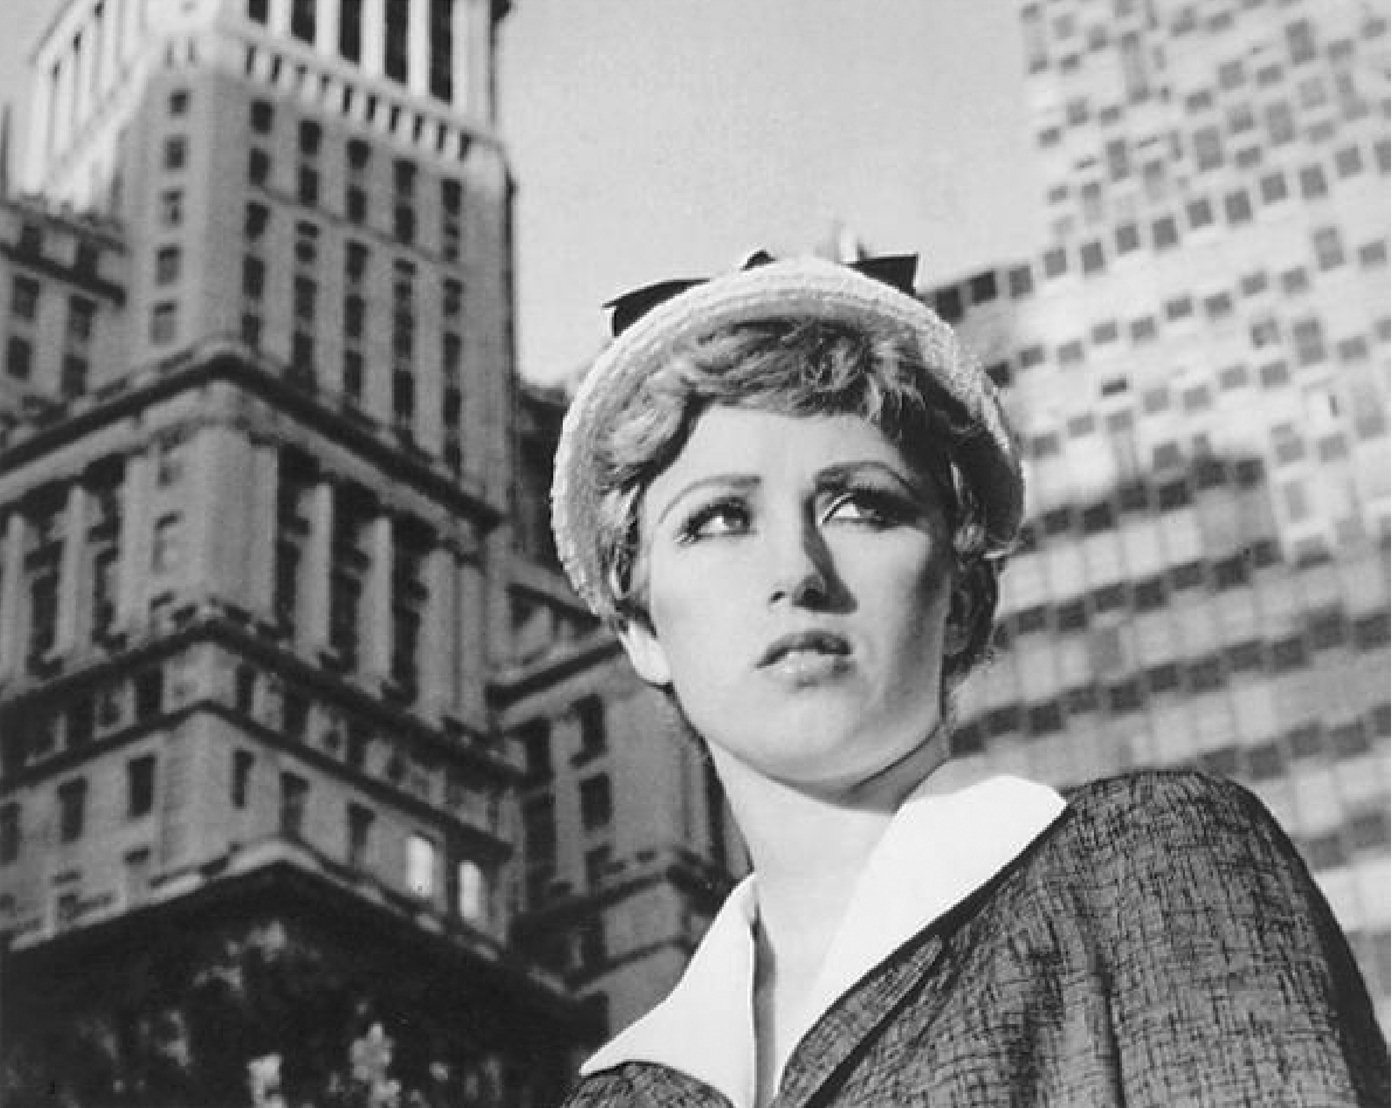 Cindy Sherman: Untitled Film Still #21, 1978